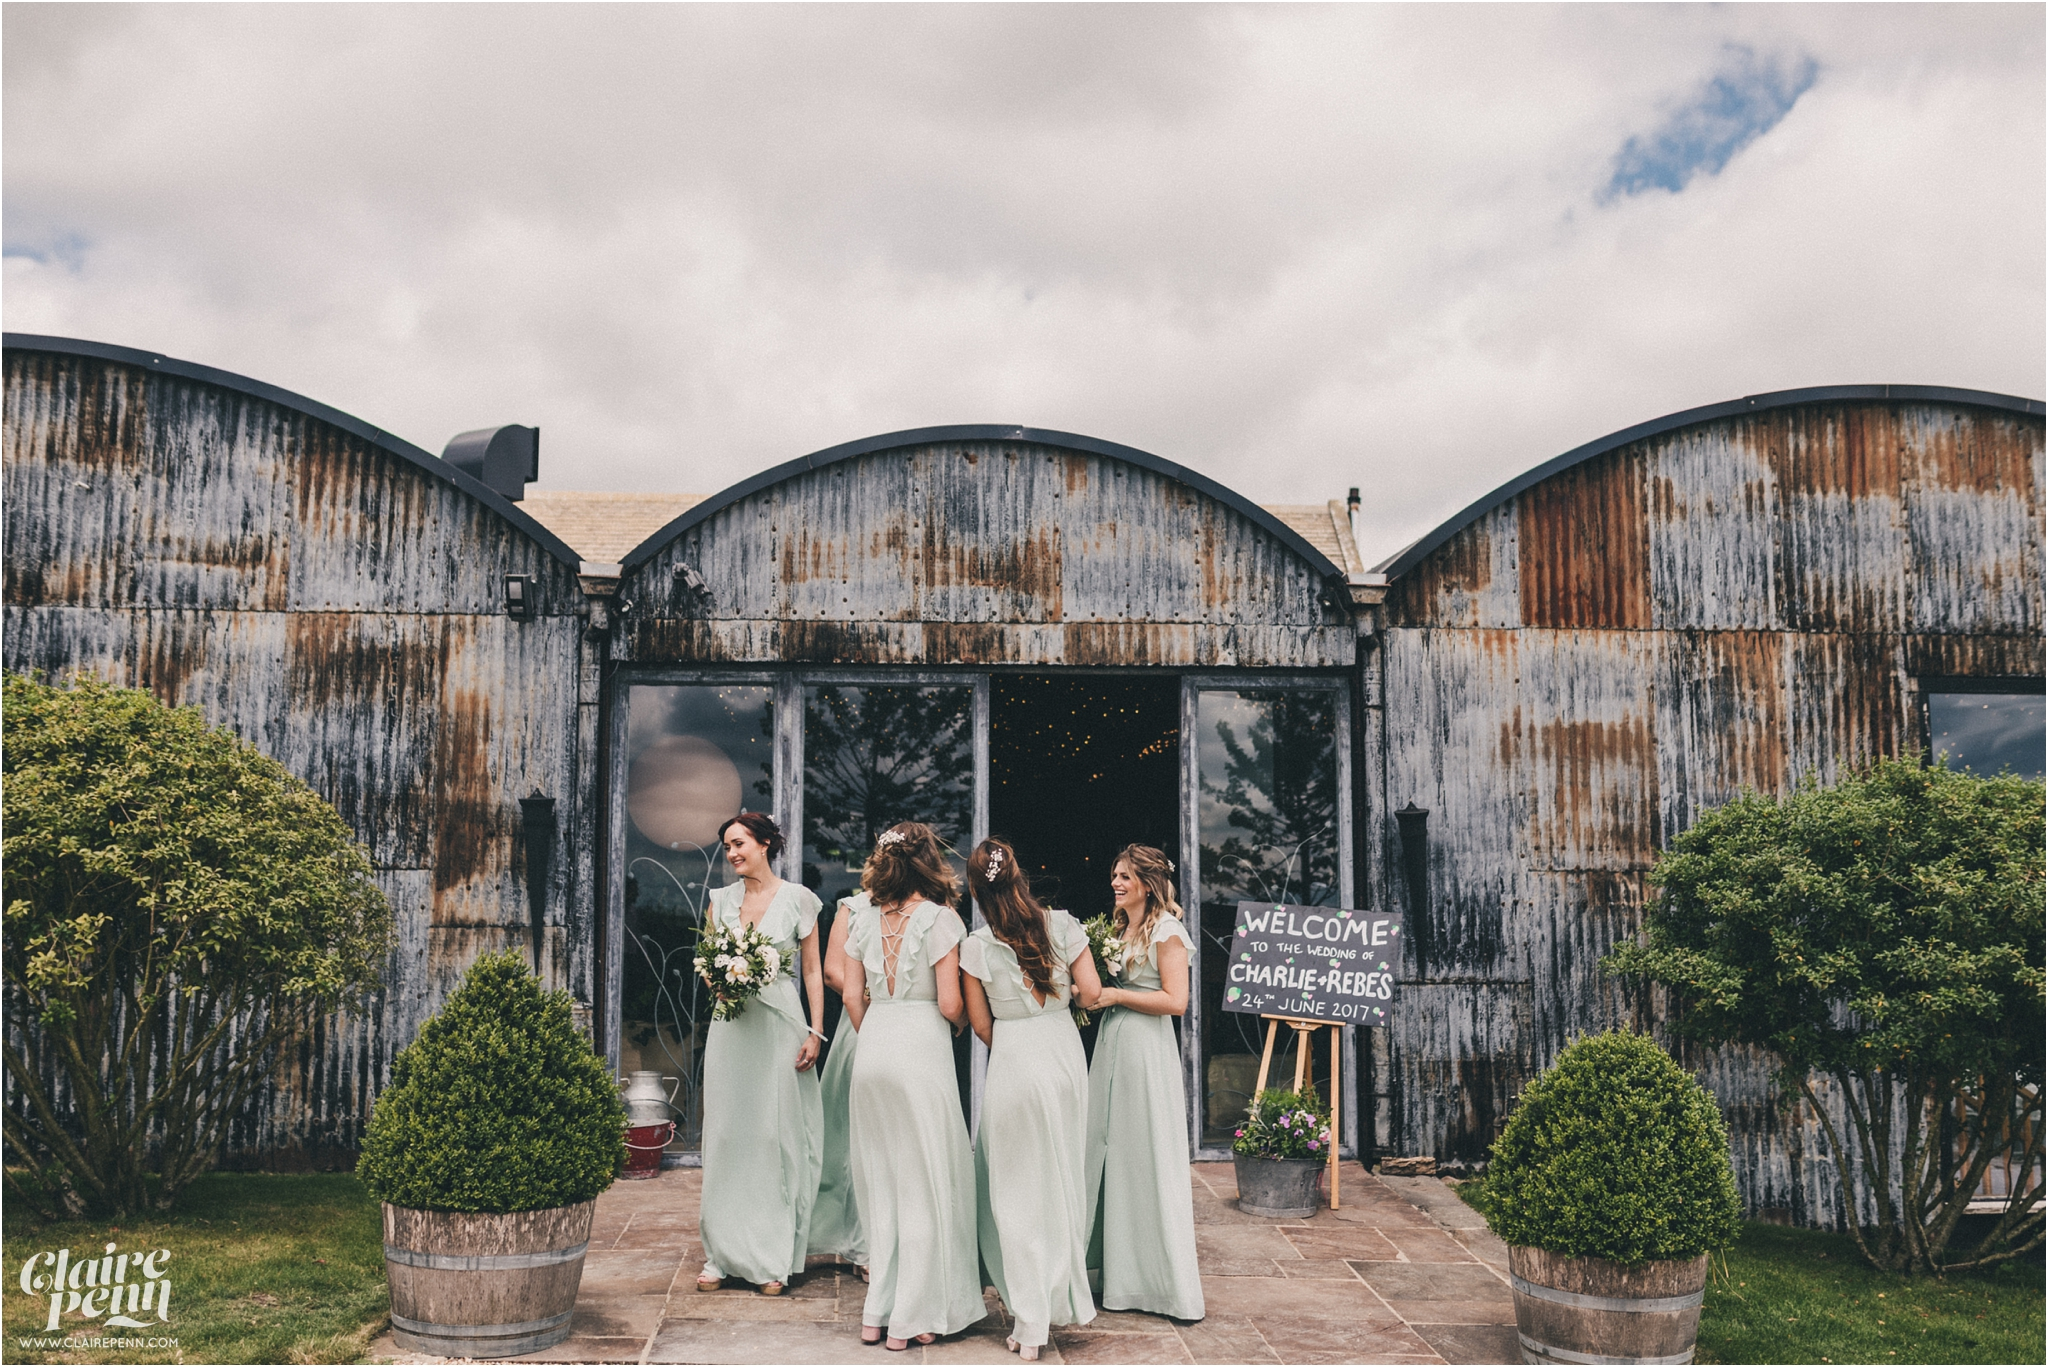 Cripps Stone Barn wedding Cheltenham Cotswolds_0014.jpg